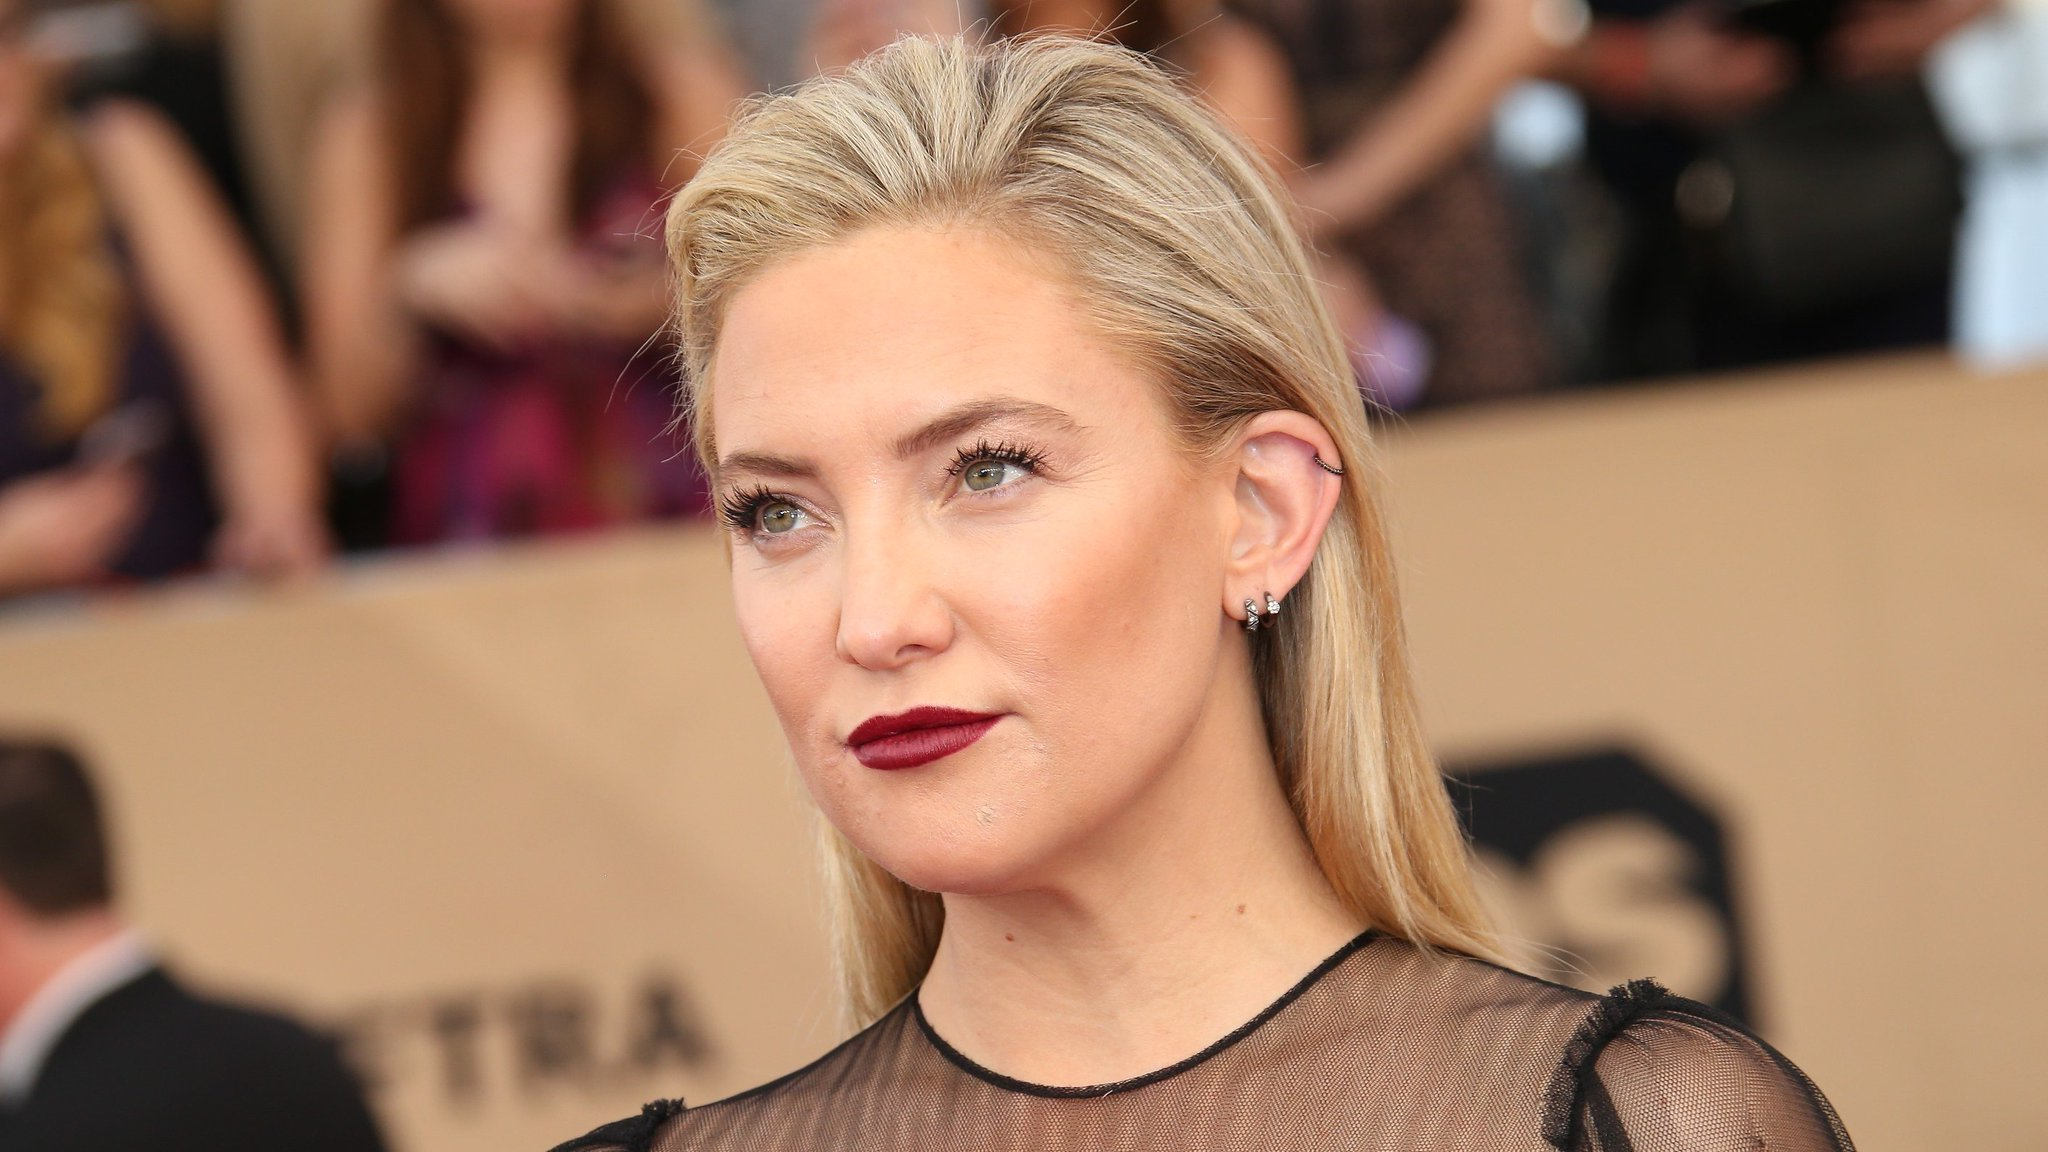 Kate Hudson shaved her head, and the pic will legit make your jaw drop: https://t.co/VQRN2sPb6n https://t.co/ag5eQnceSe